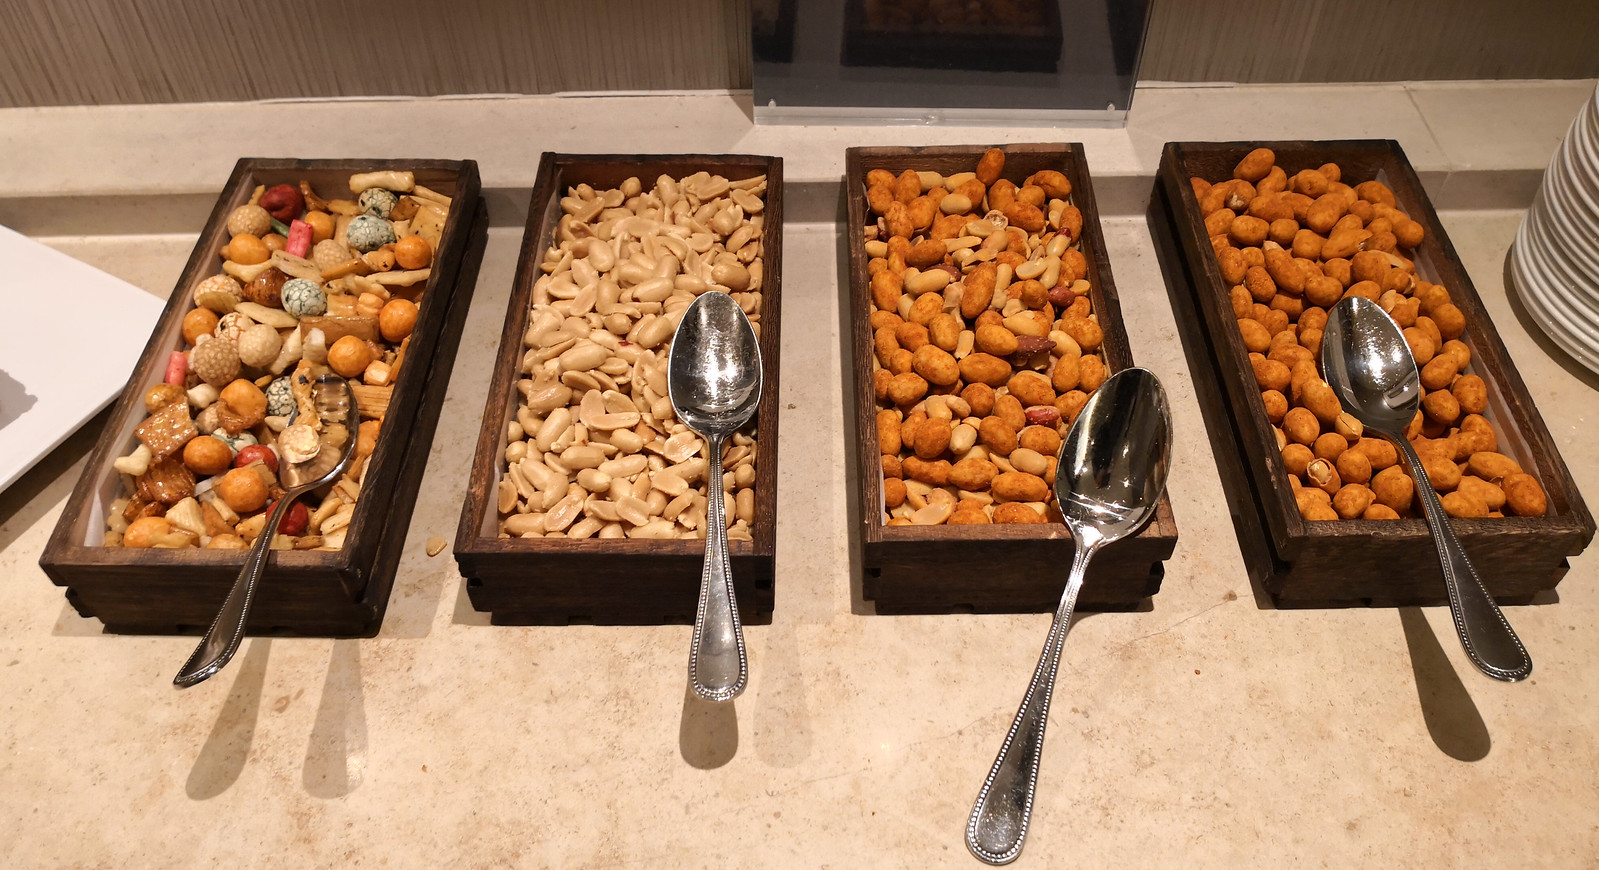 Variety of nut snacks